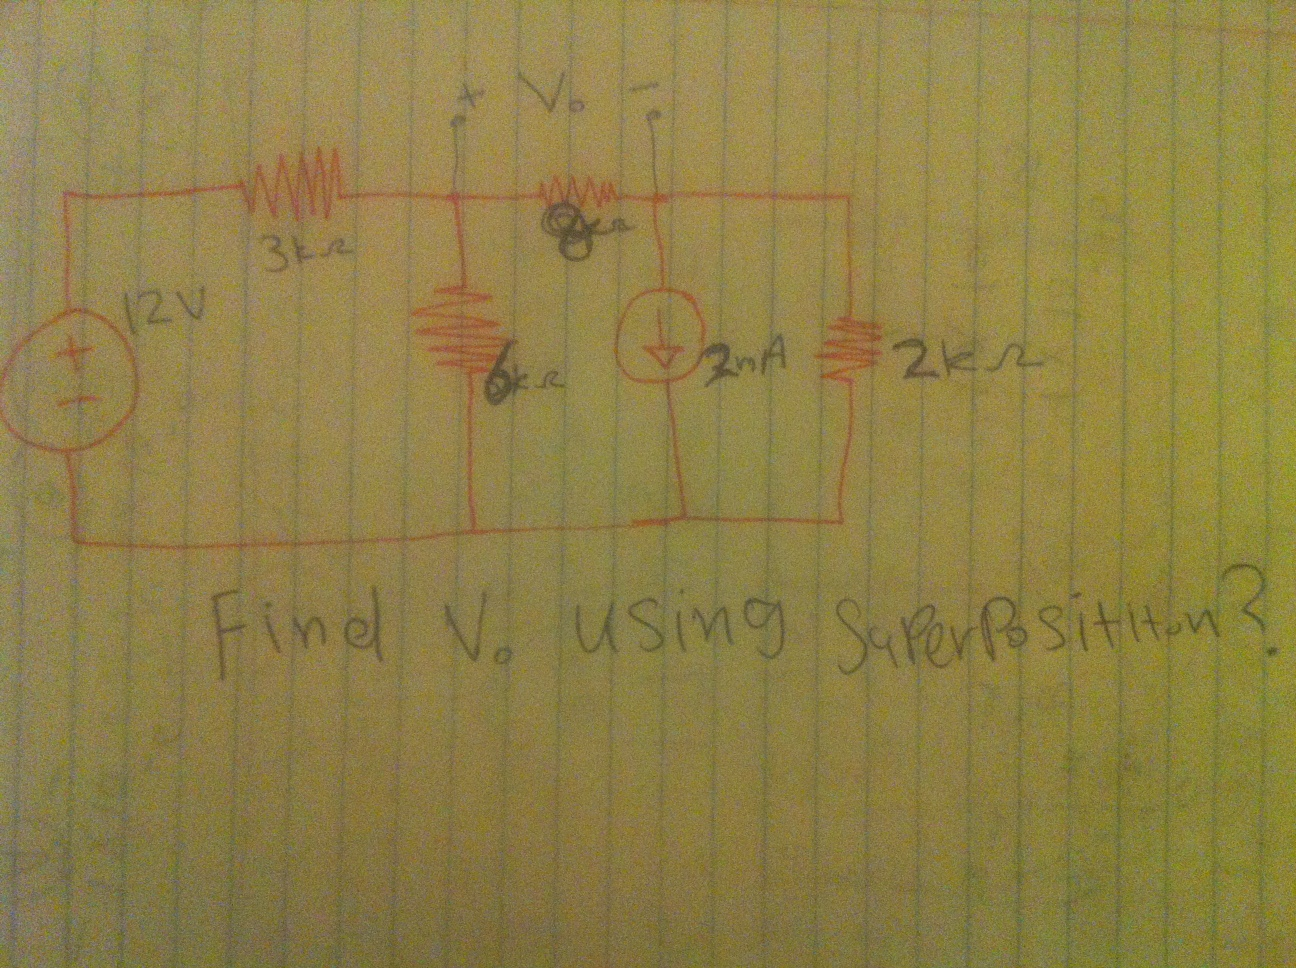 Find V0. using Superposition?